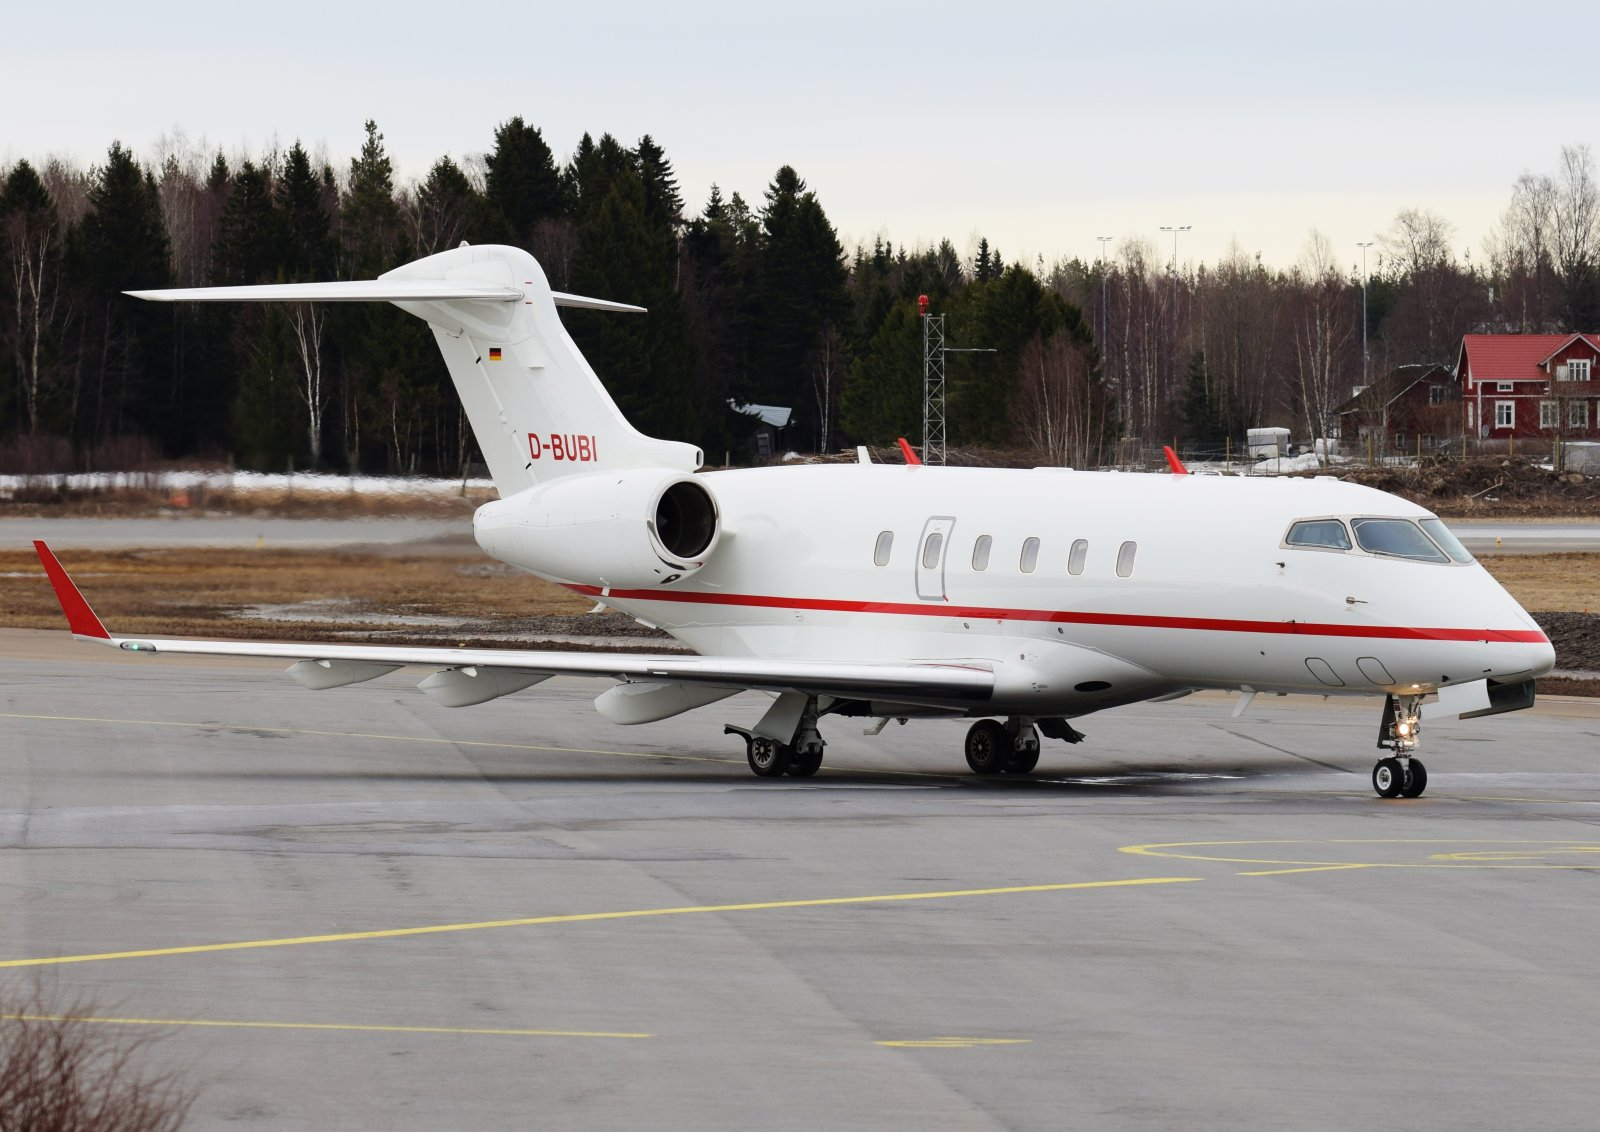 D-BUBI - Bombardier Challenger 300 - Windrose Air - 28.3.2019